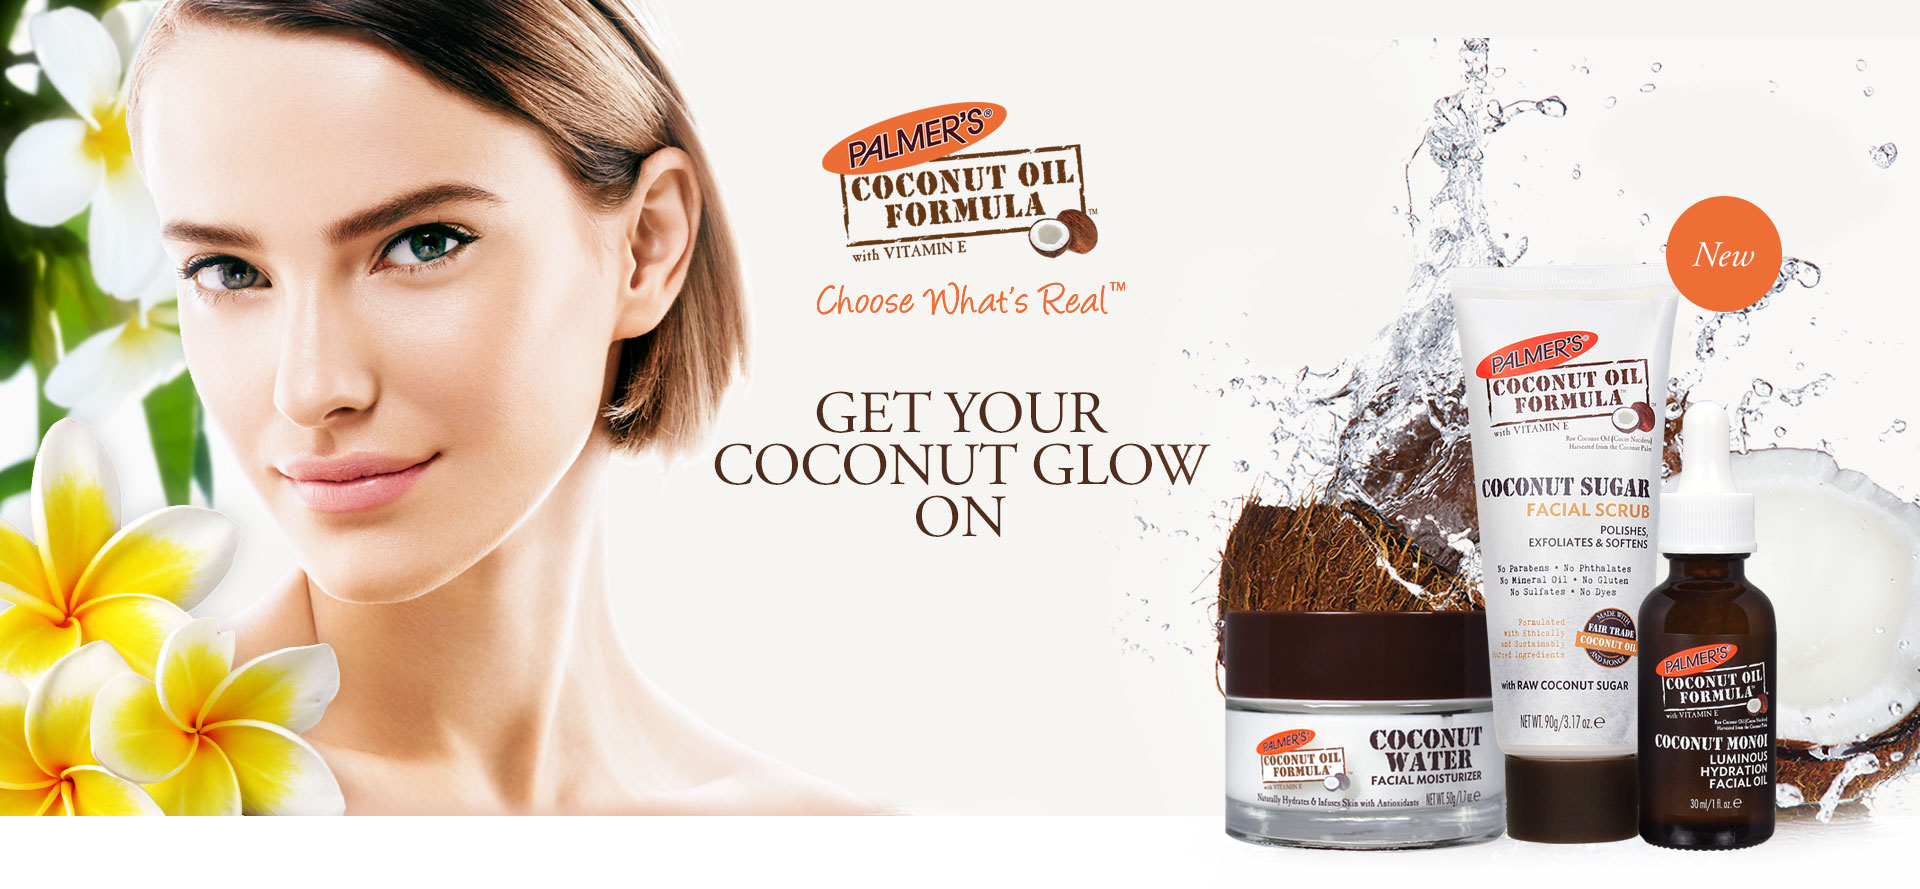 Coconut Radiance Palmers